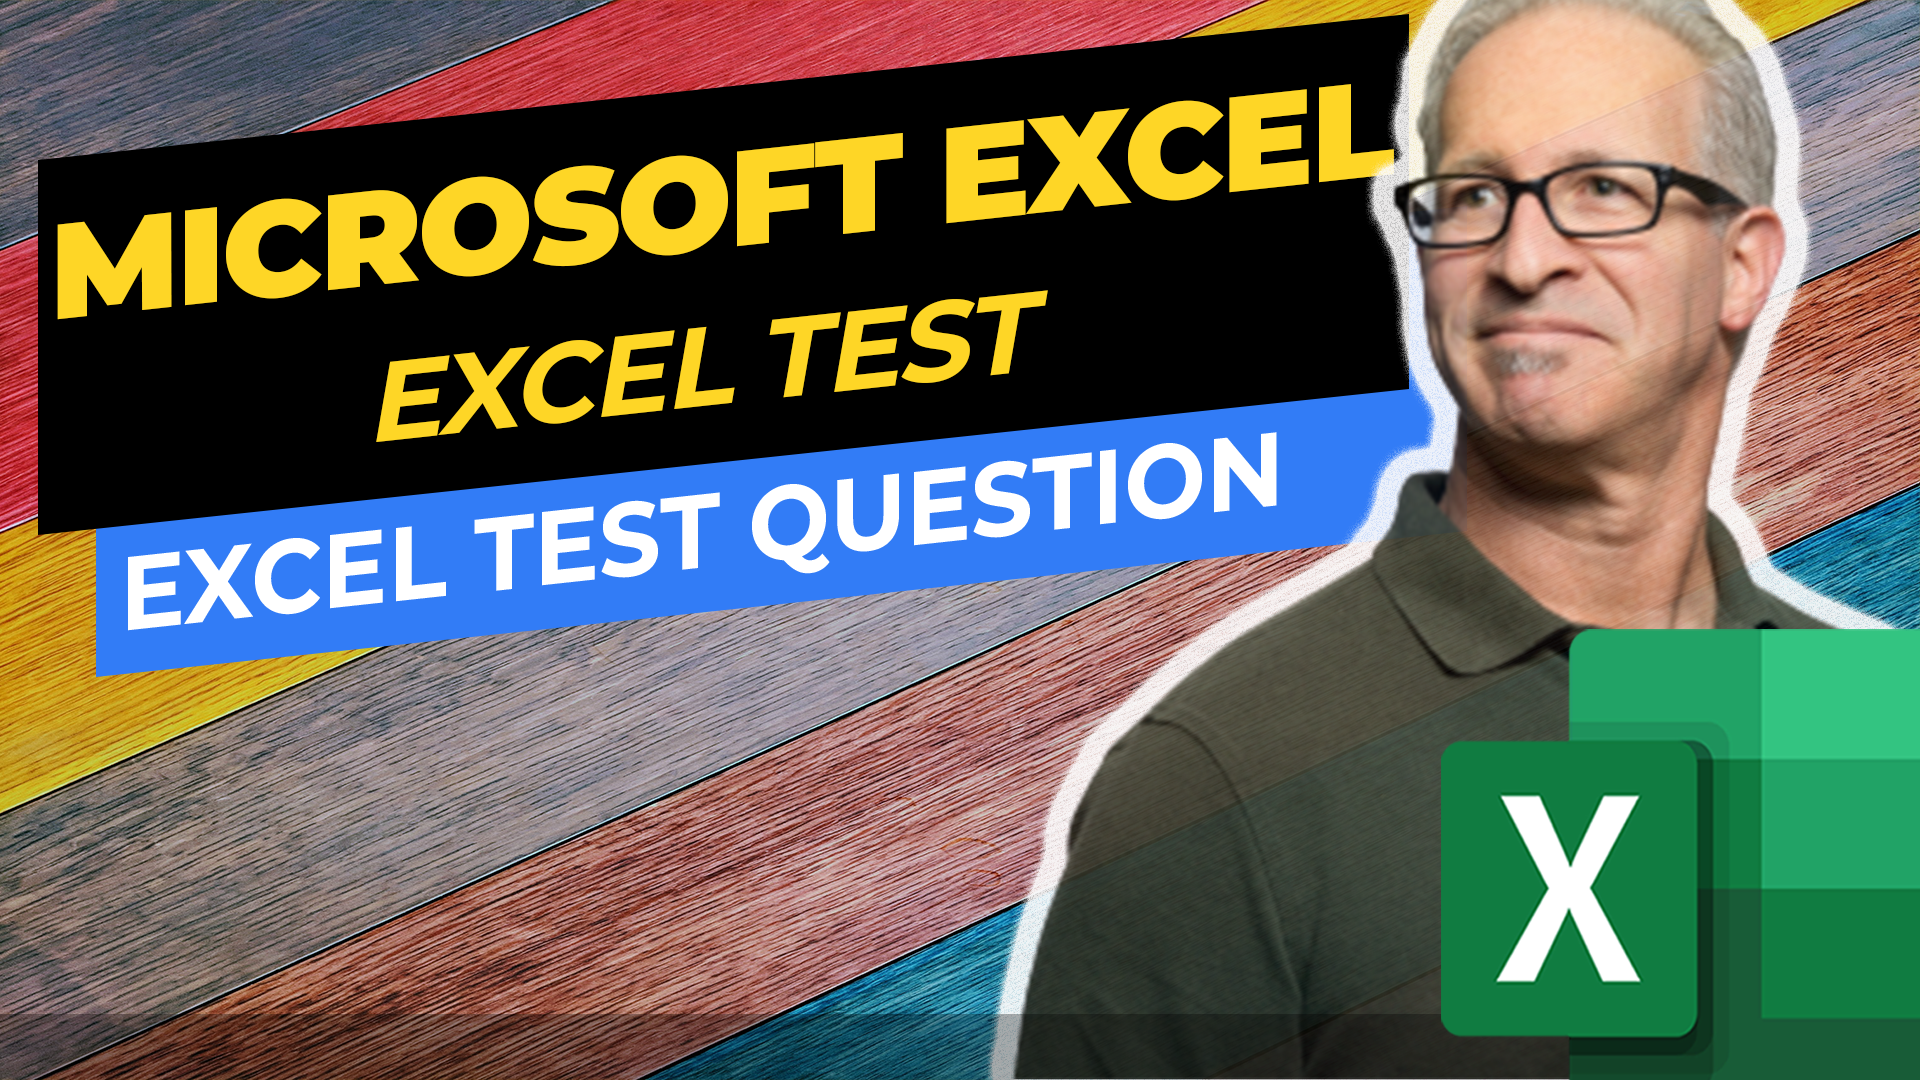 Test Excel Knowledge - Excel Test Question How to calculate the overall price of the items